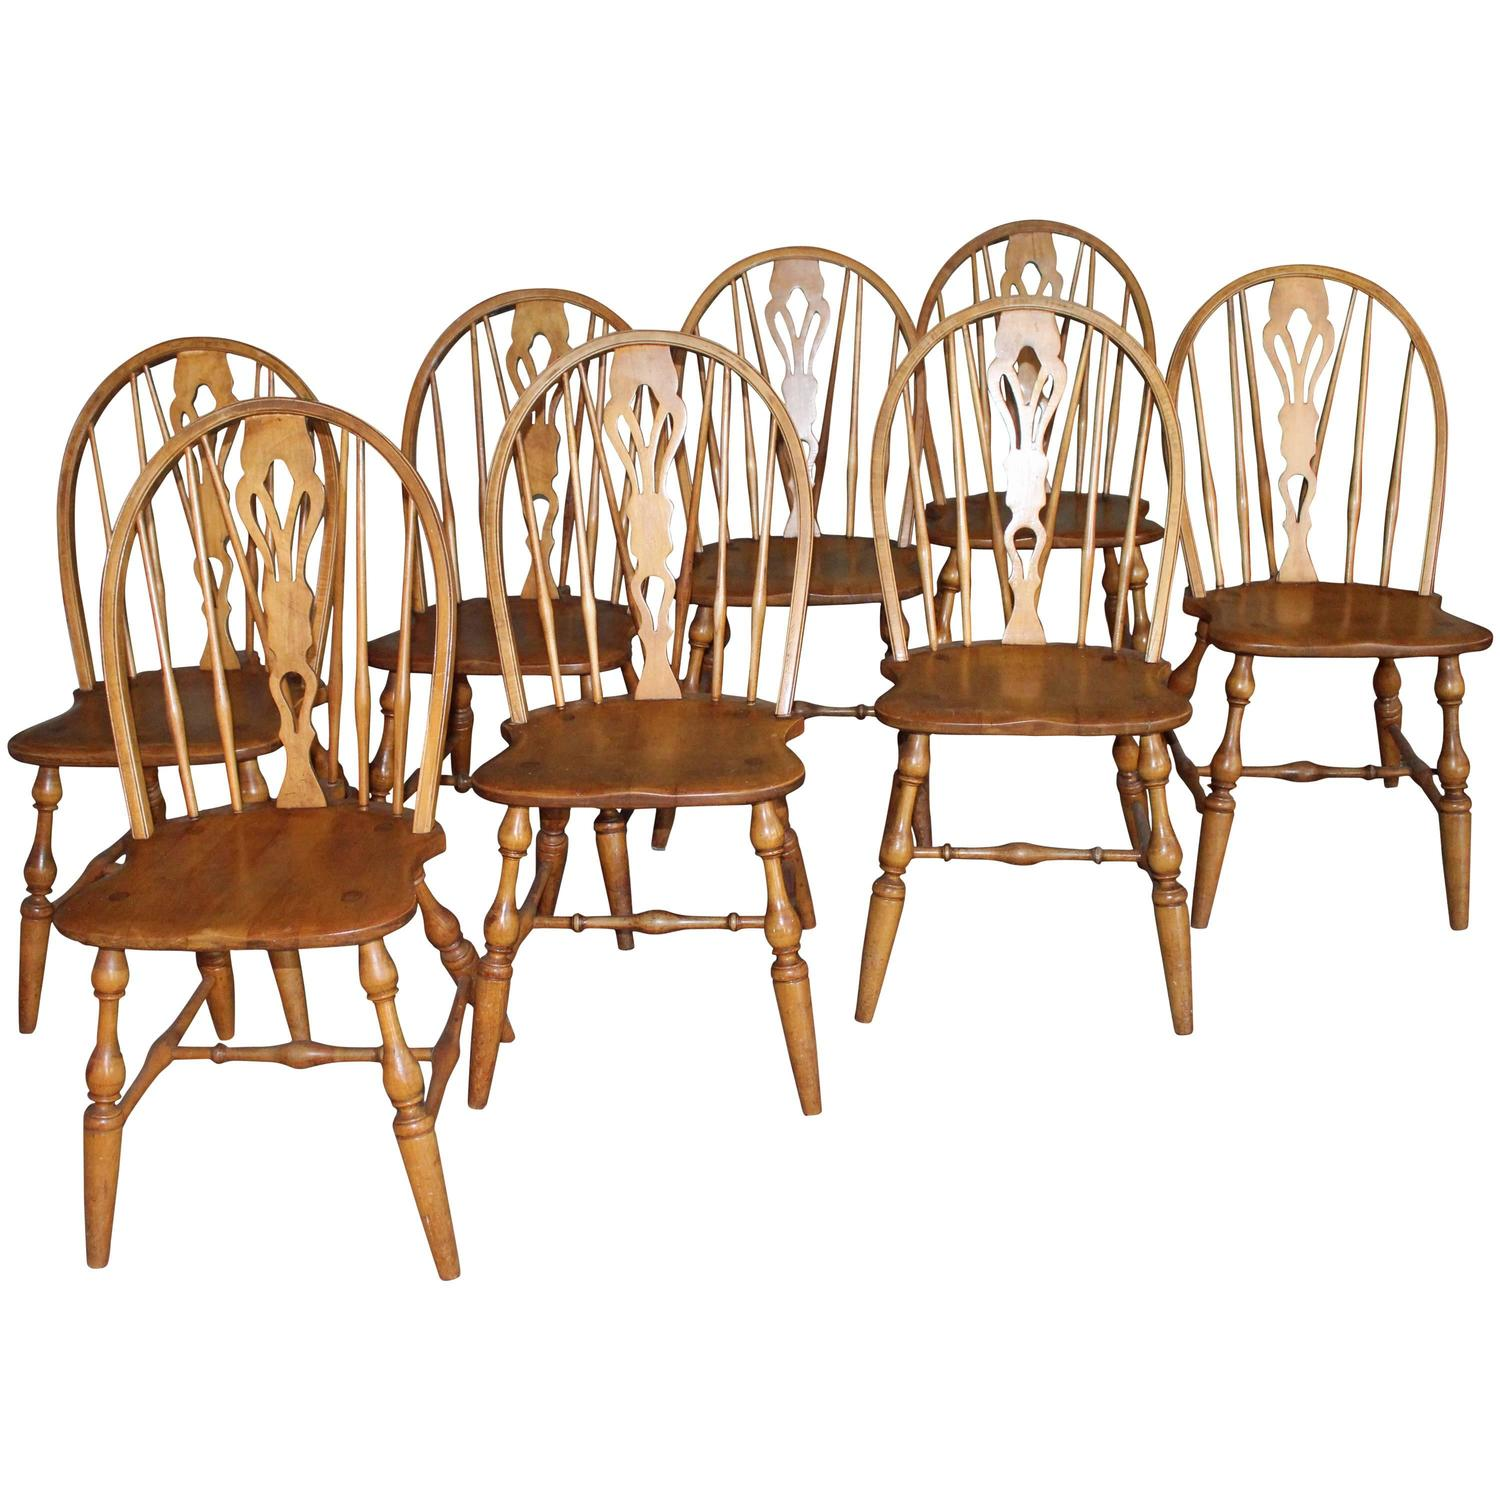 antique windsor chair identification on wheels english bow brace back dining chairs with